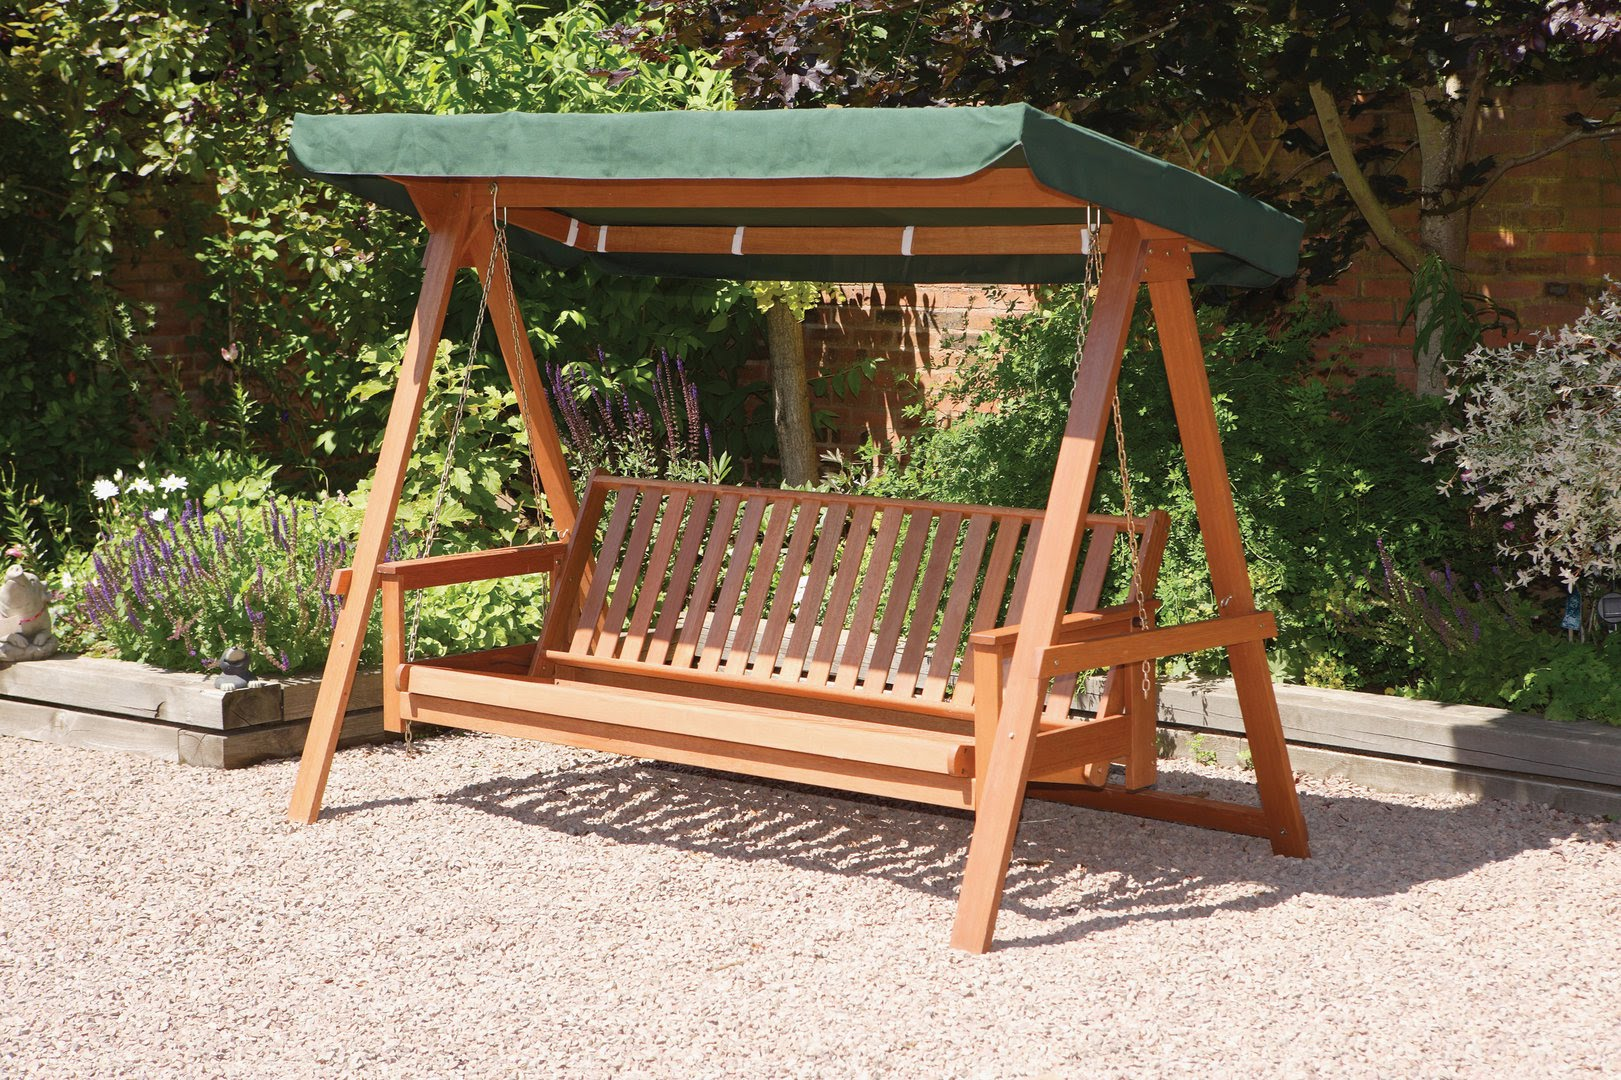 Stunning Garden Swing Chair | Garden Swing Chair Accessories - YouTube garden swing seat